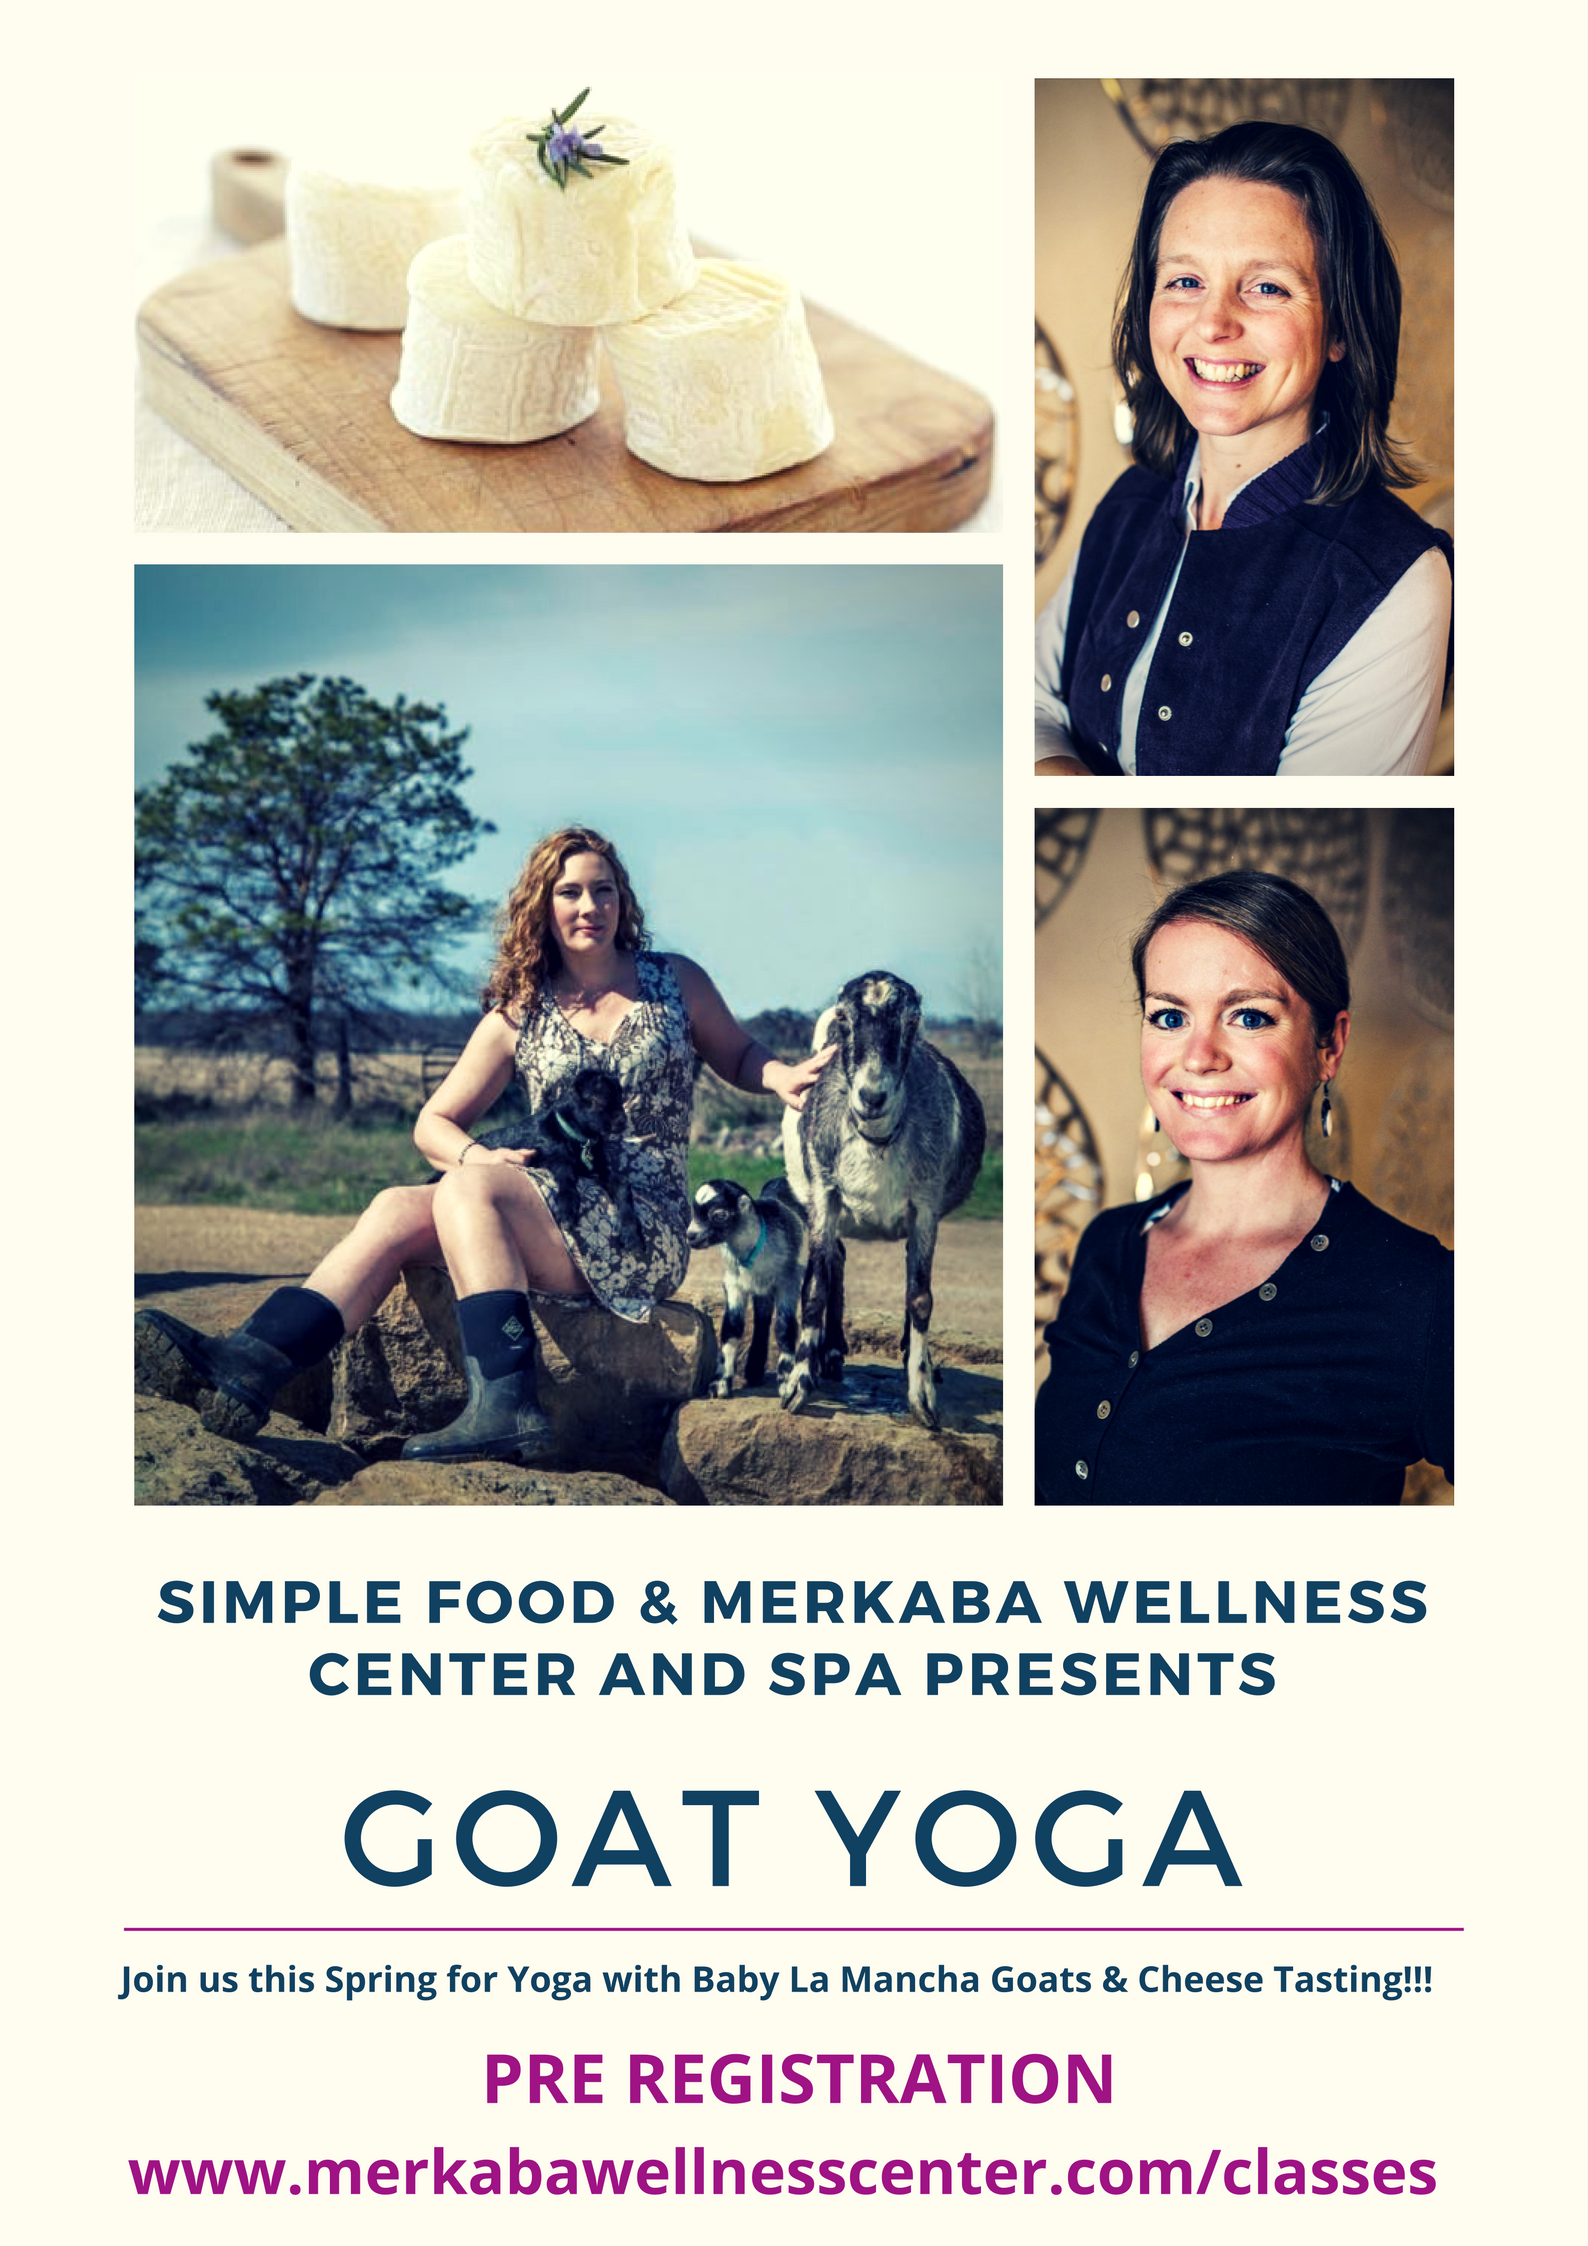 During Spring, join us for a special treat, Yoga in the country with Baby Goats and Cheese Tasting from Simple Food. Your Practitioner will guide you through classic empowering and relaxing yoga poses. Your body becomes a playground for goats just born into this world. It's a circle of fun and healing that will open your heart. Completely serious, incredibly hilarious, and everything in between. Each class ends with Simple Food's, specially crafted Goat Cheese and Milk tasting. **Seasonal** Bring your own Yoga mat.  Click link below to register  This class is SOLD OUT. Please click the link below for future dates.   75 Minute Class with Cheese tasting $45 /without Cheese tasting $35